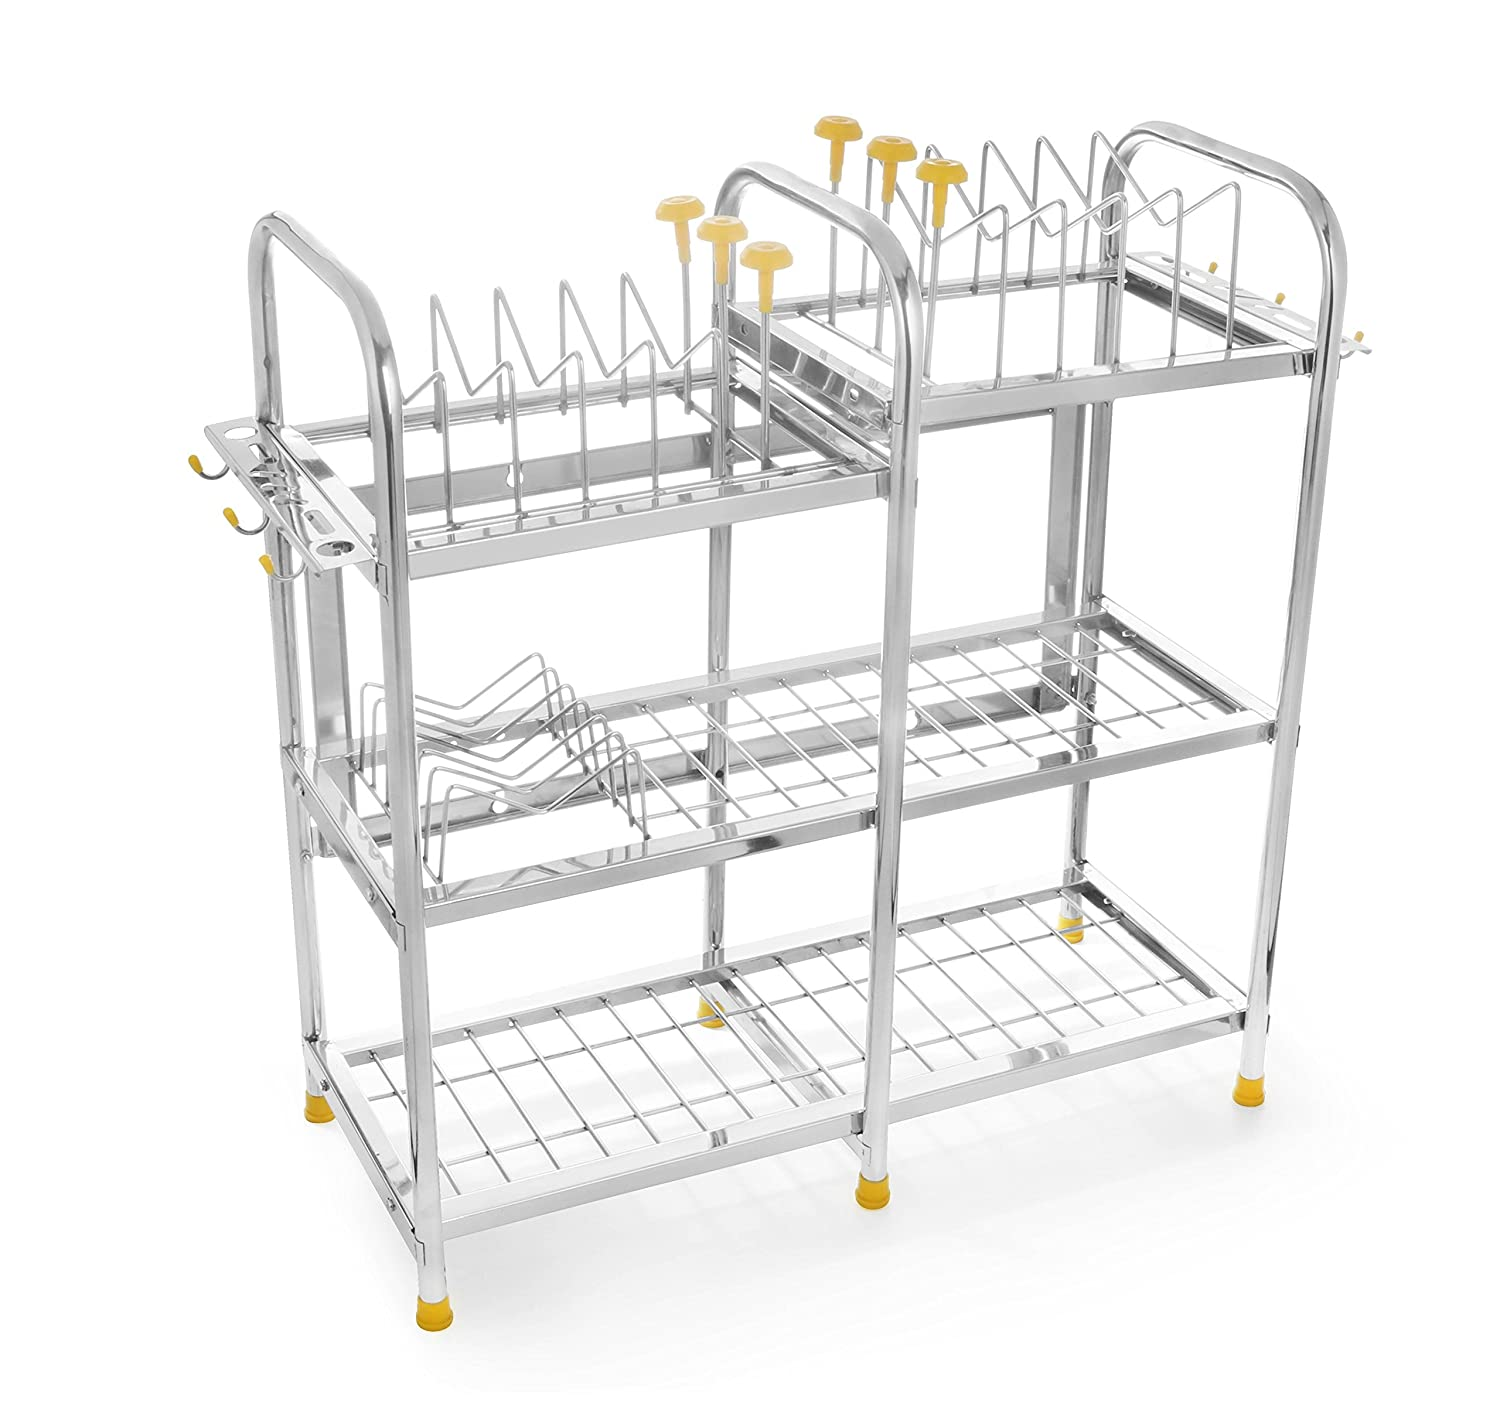 Buy classic essentials stainless steel kitchen rack silver online at low prices in india amazon in